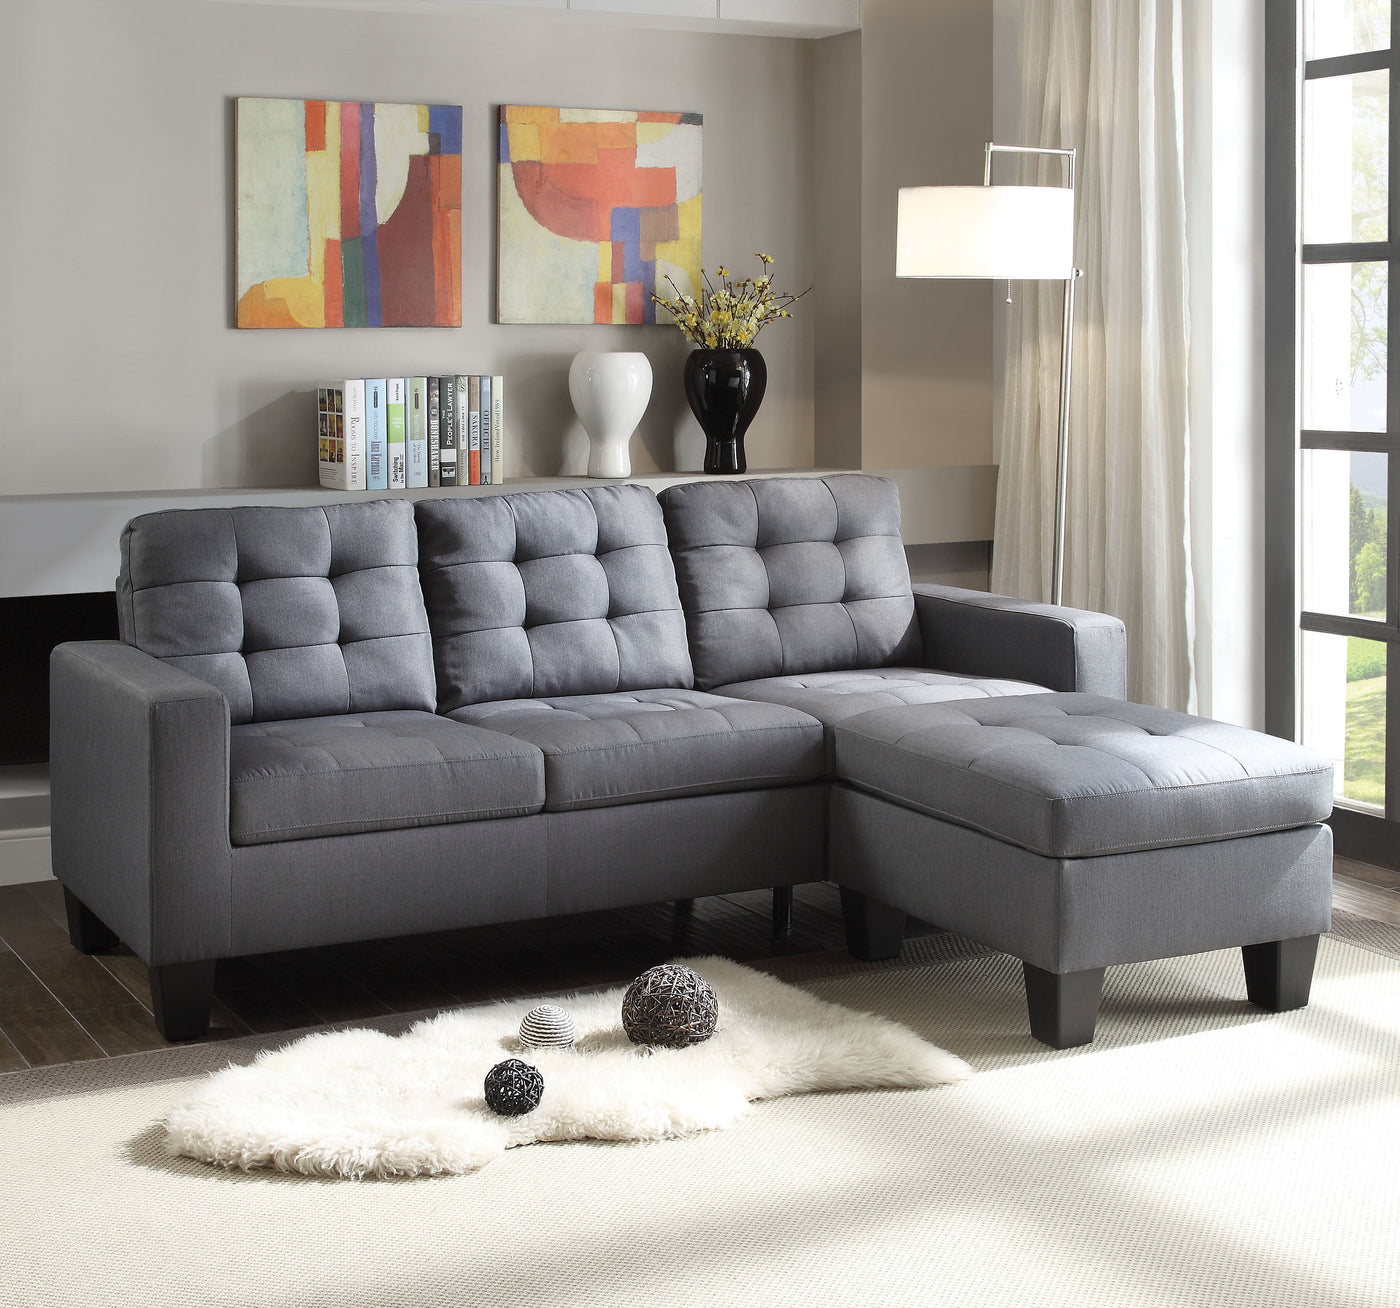 ACME 52775 Earsom Sectional Sofa, Gray Linen